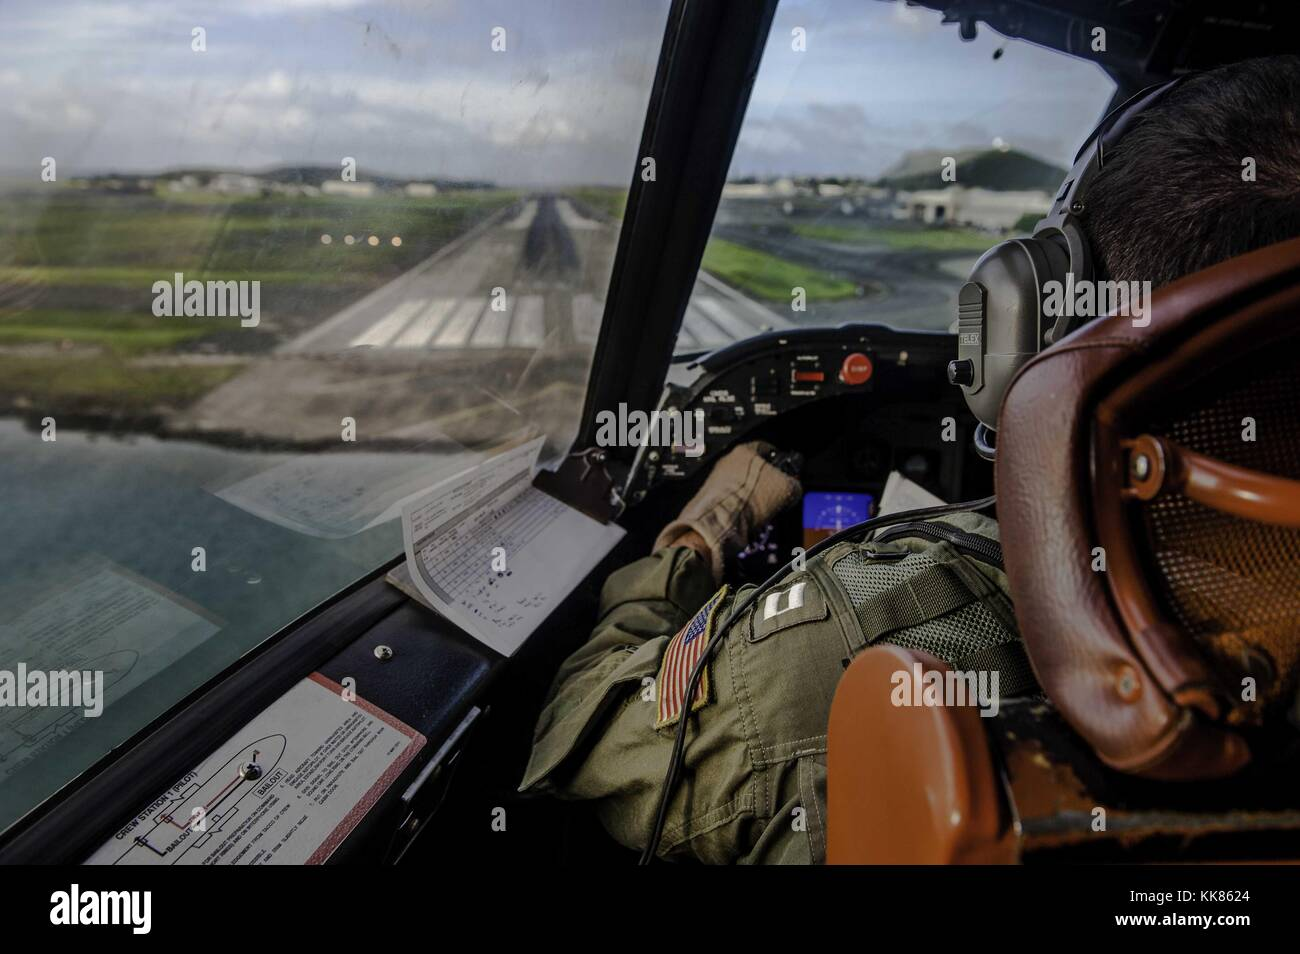 LT Christopher Malherek, assigned to the Golden Eagles of Patrol Squadron (VP) 9, prepares to land a P-3C Orion - Stock Image